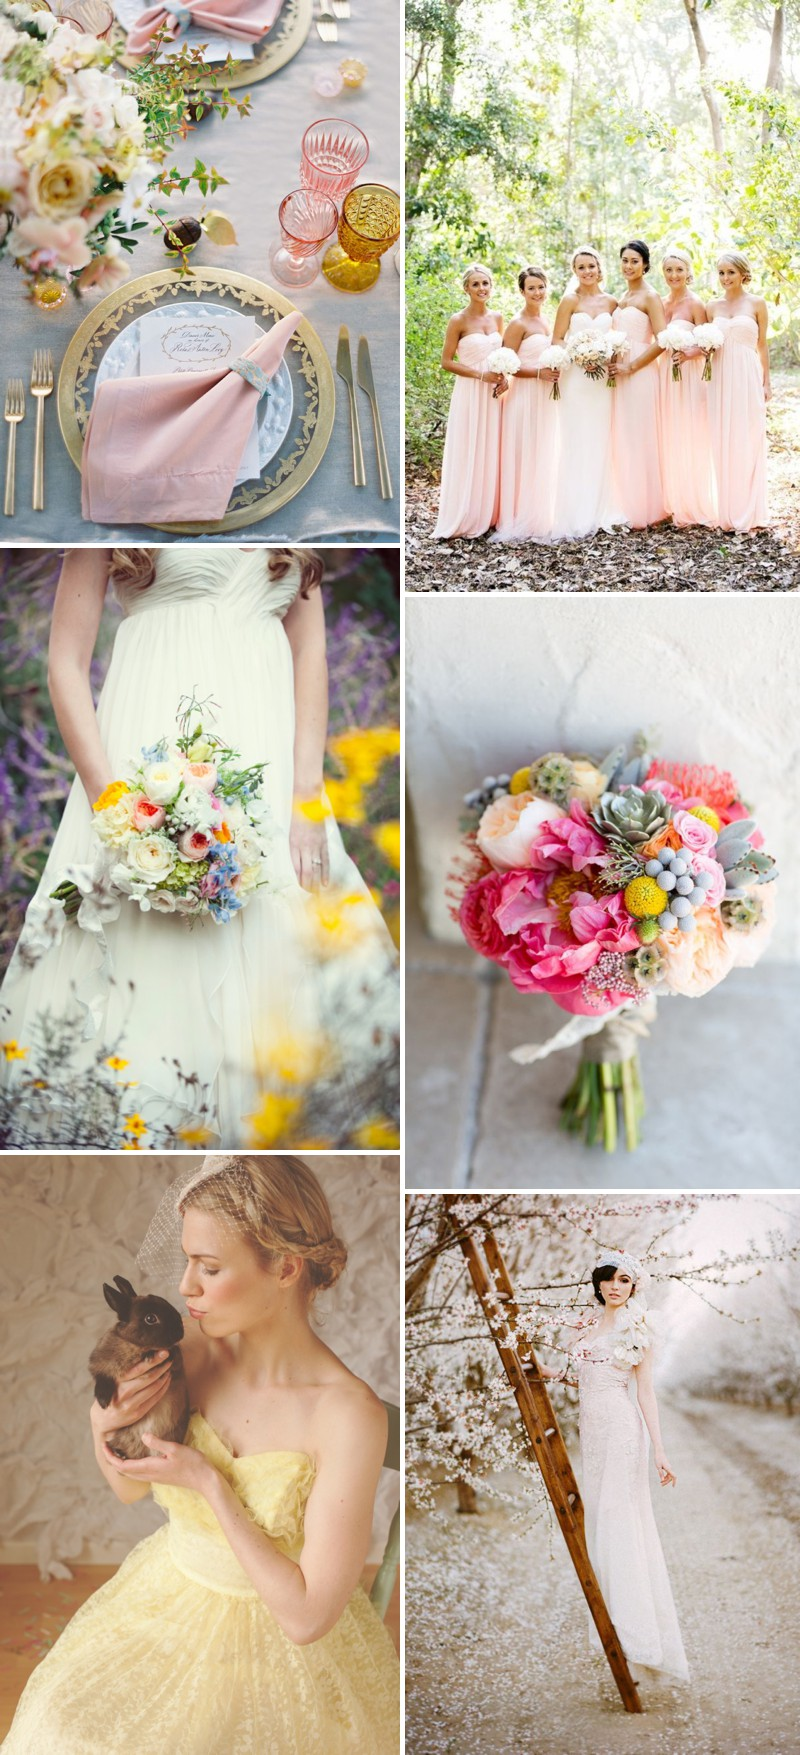 Rock My Wedding Announces The Winner Of Their Spring Pinterest Competition._0003